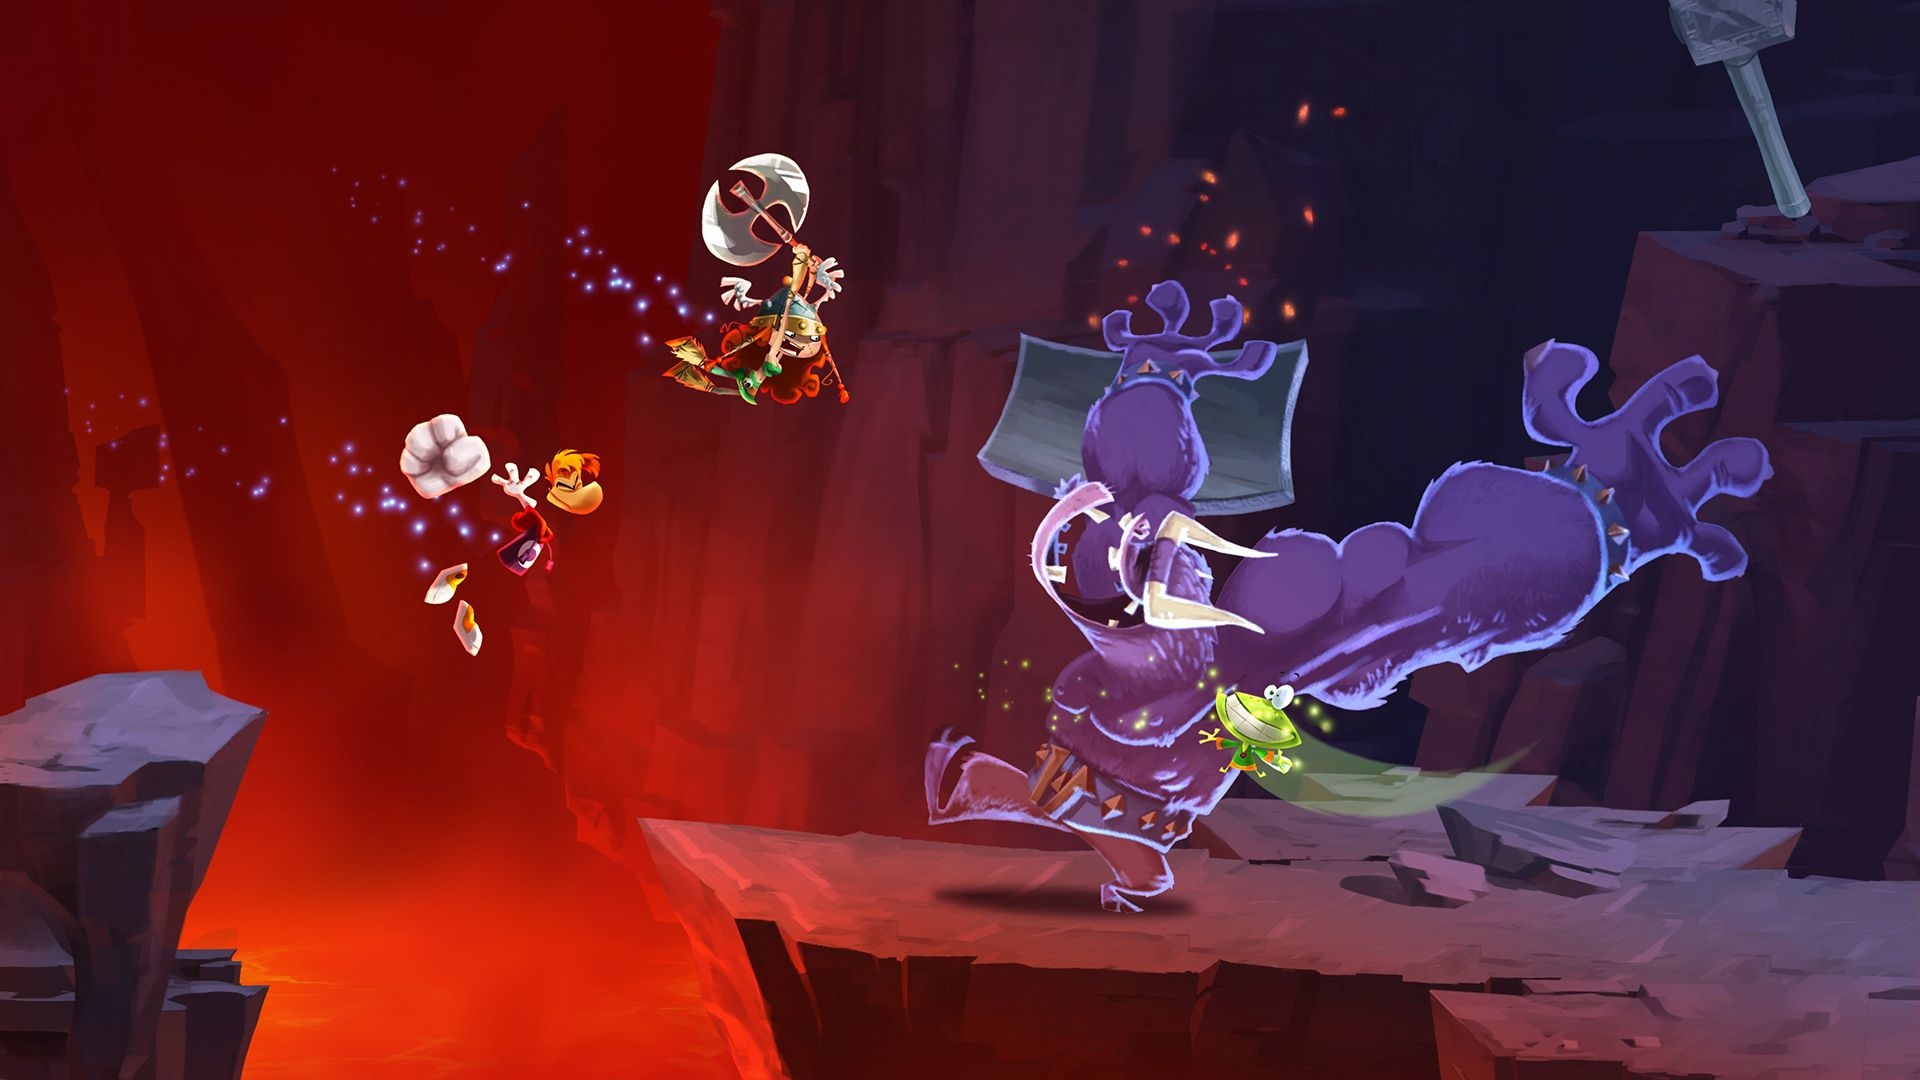 Rayman_Legends_Murphy2.jpg (1920×1080) (With images